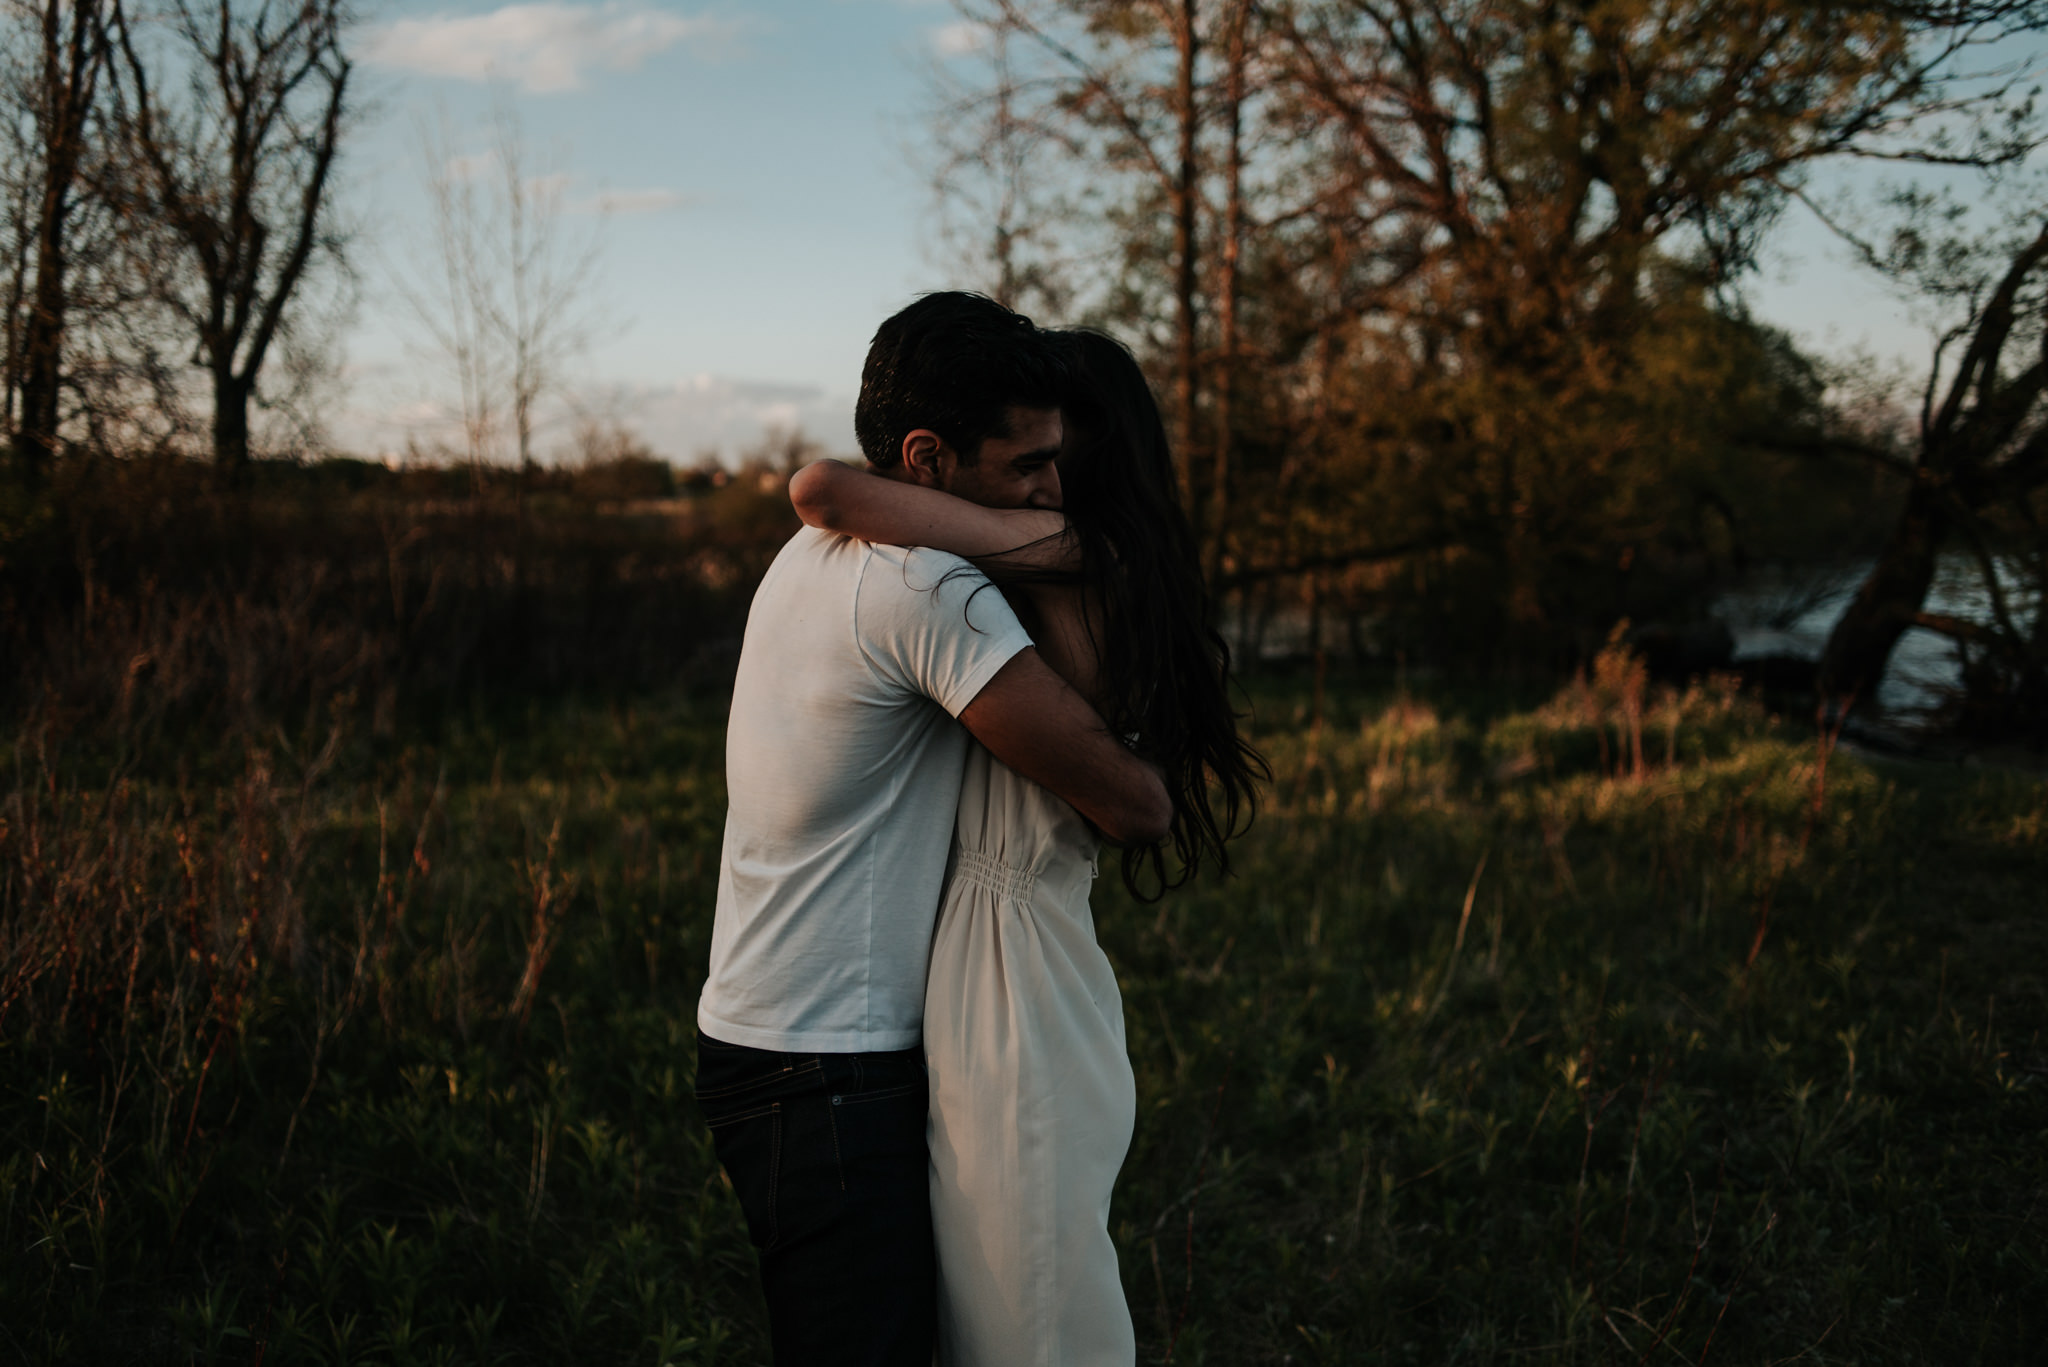 Dreamy wanderlust couple hugging at dusk, woman in white dress